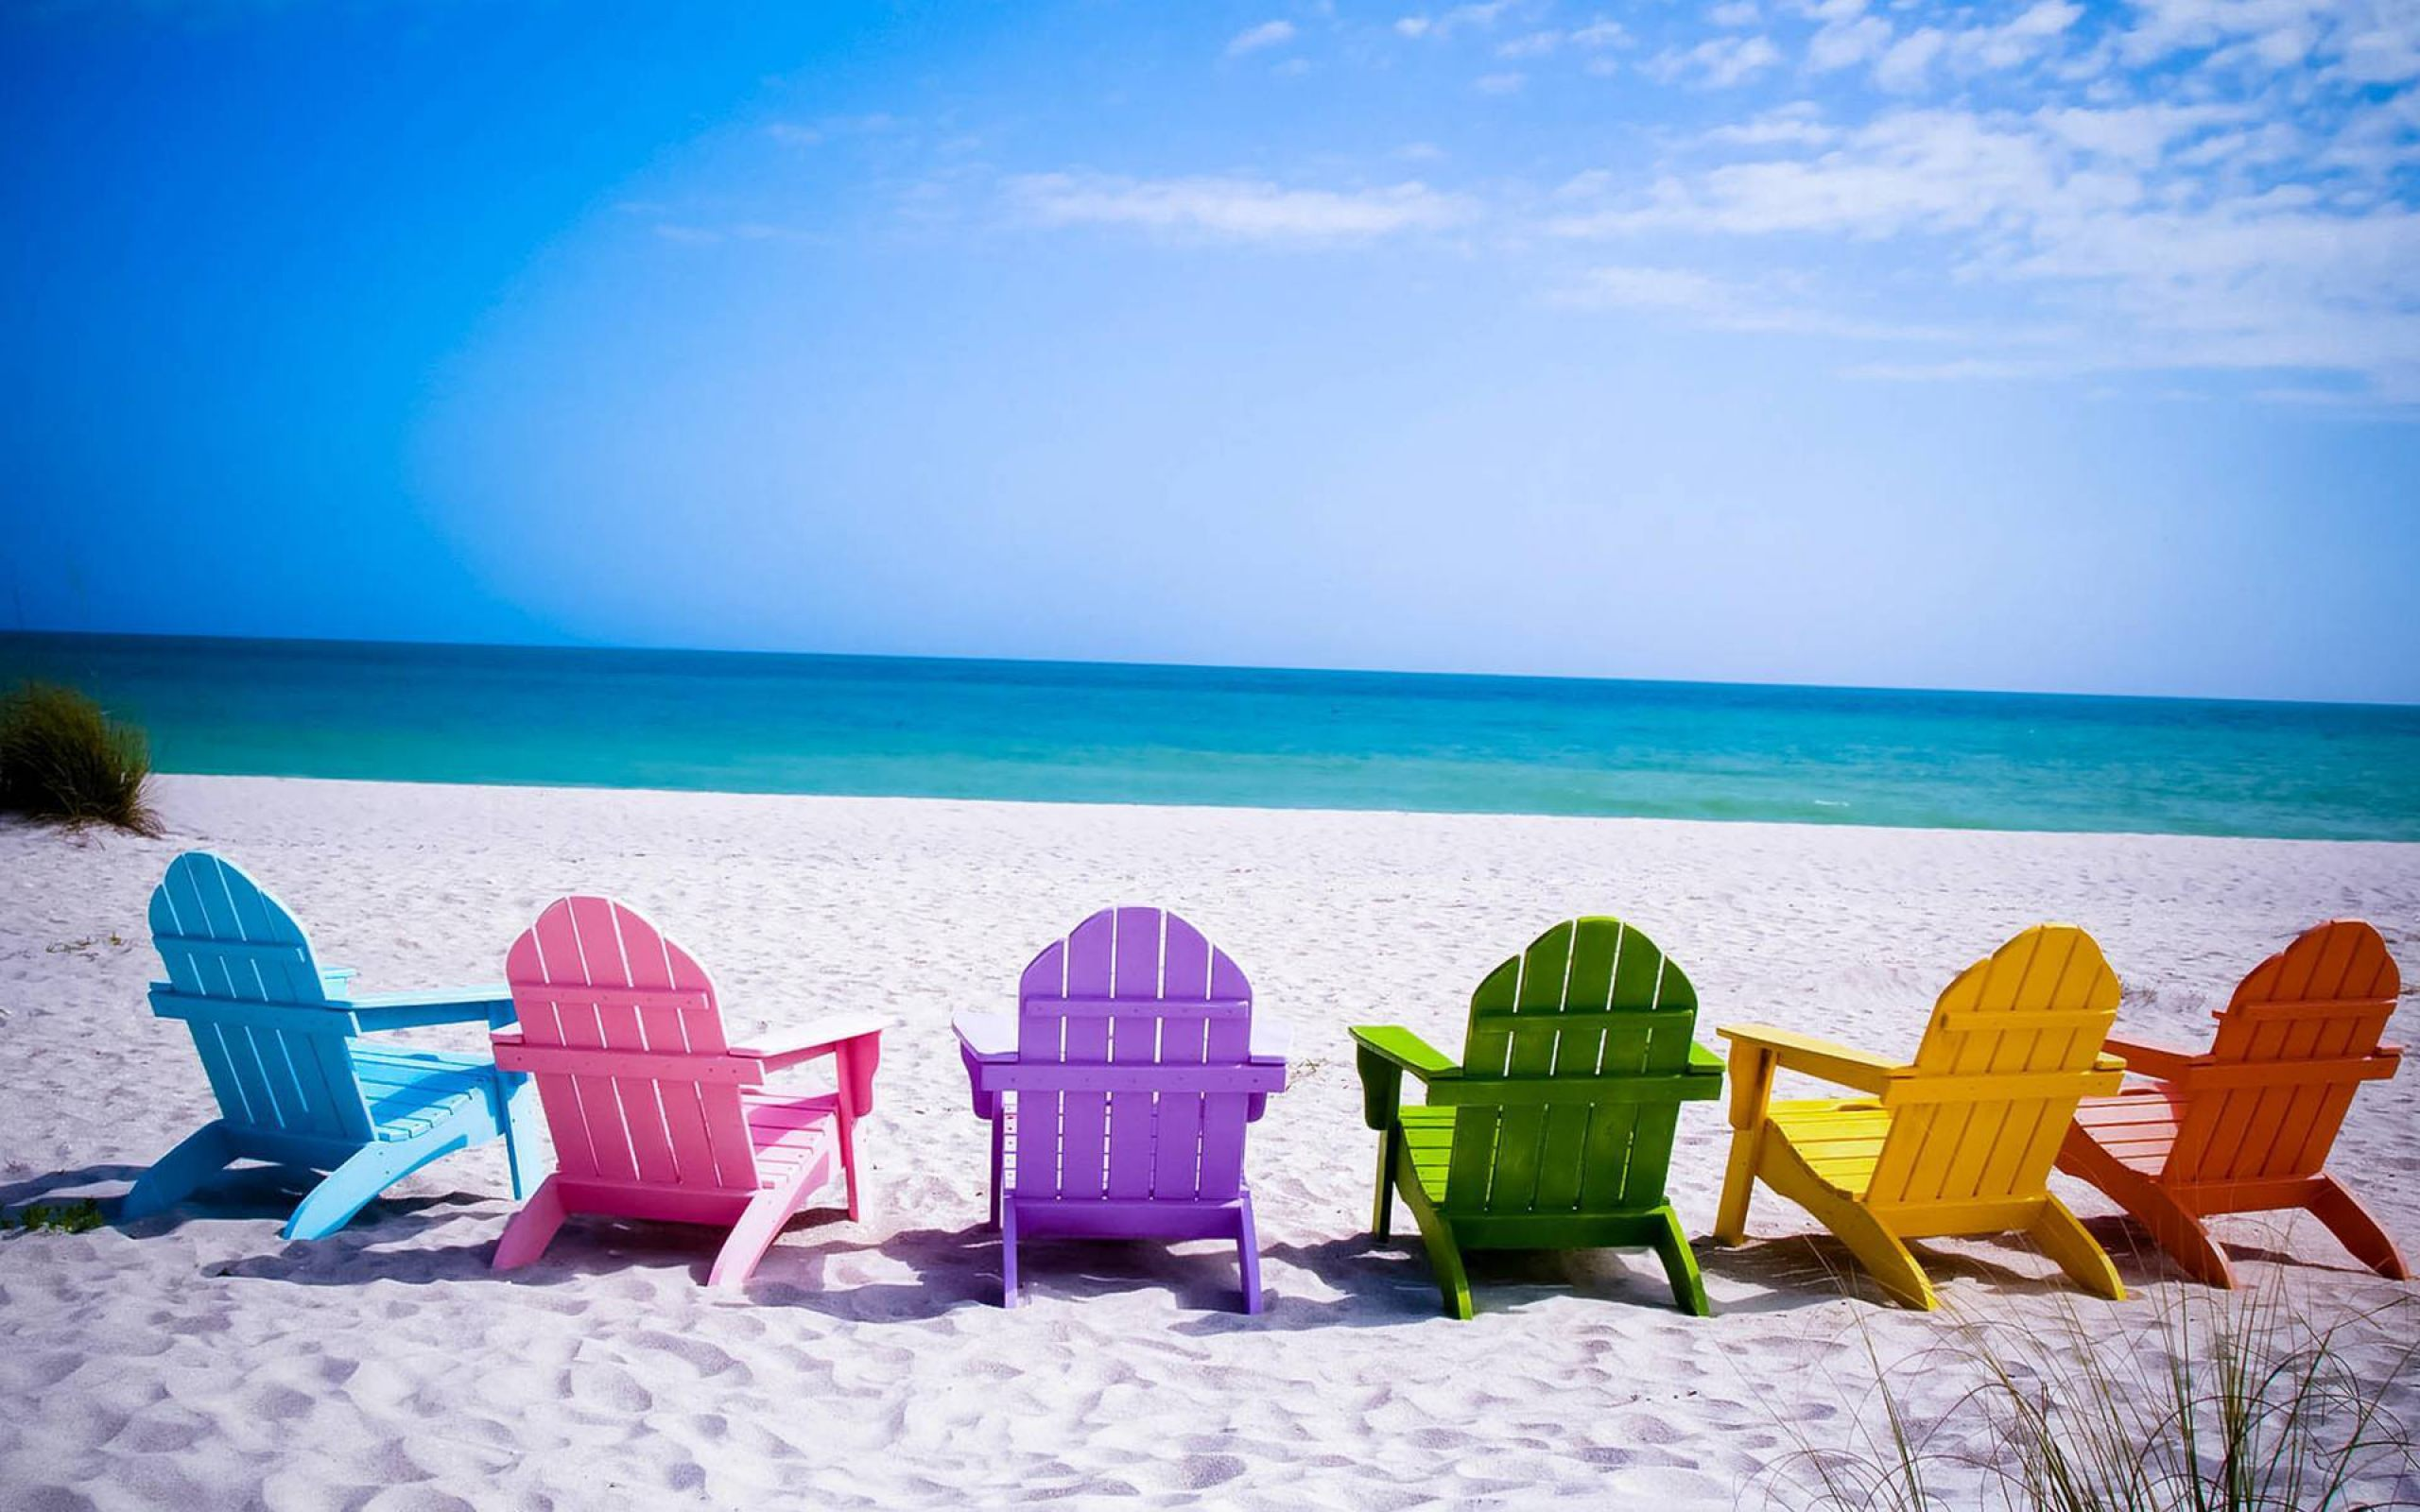 Summer Beach Chairs HD Wallpaper For Desktop Mobile 2560x1600